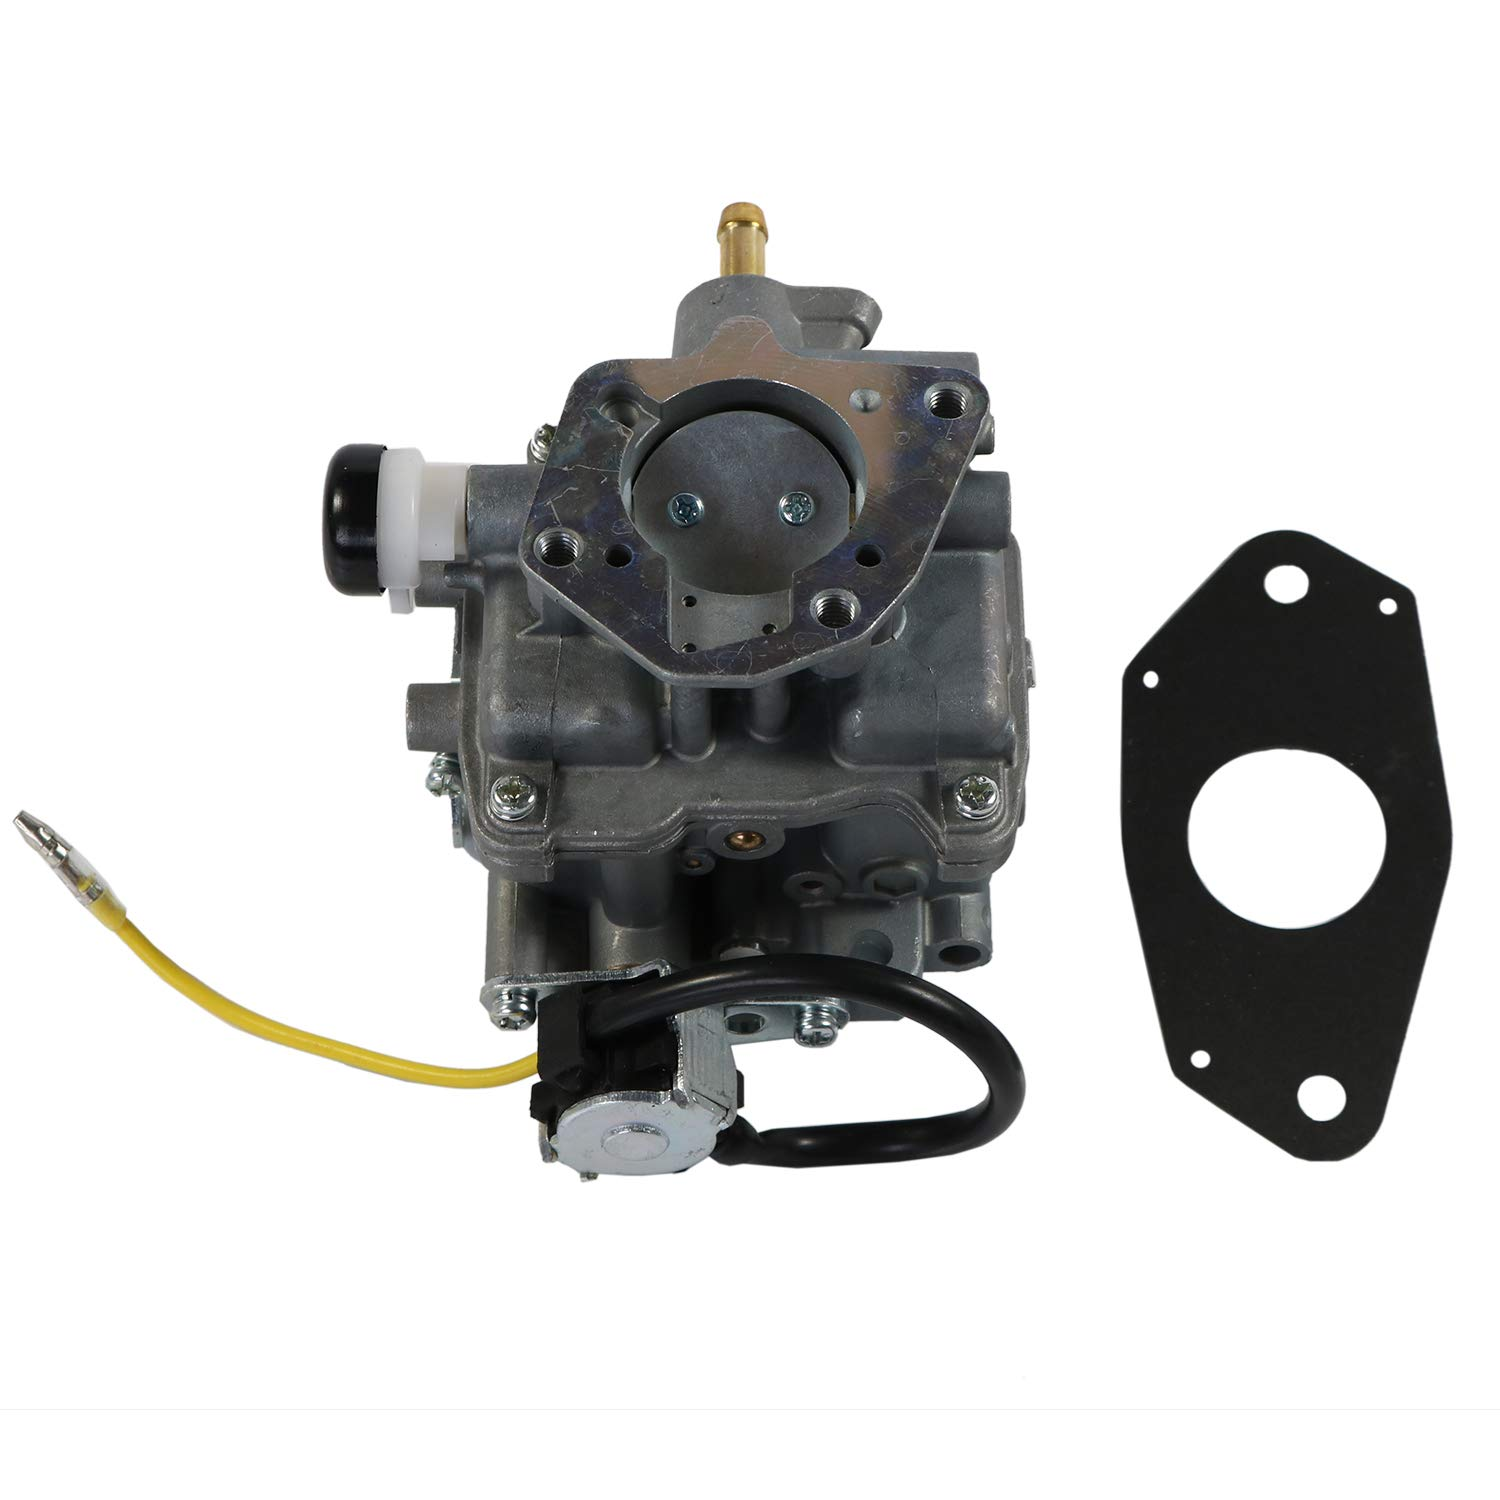 JDMSPEED New Carburetor With Gaskets Fit For Kohler Engines Kit 24 853 59-S